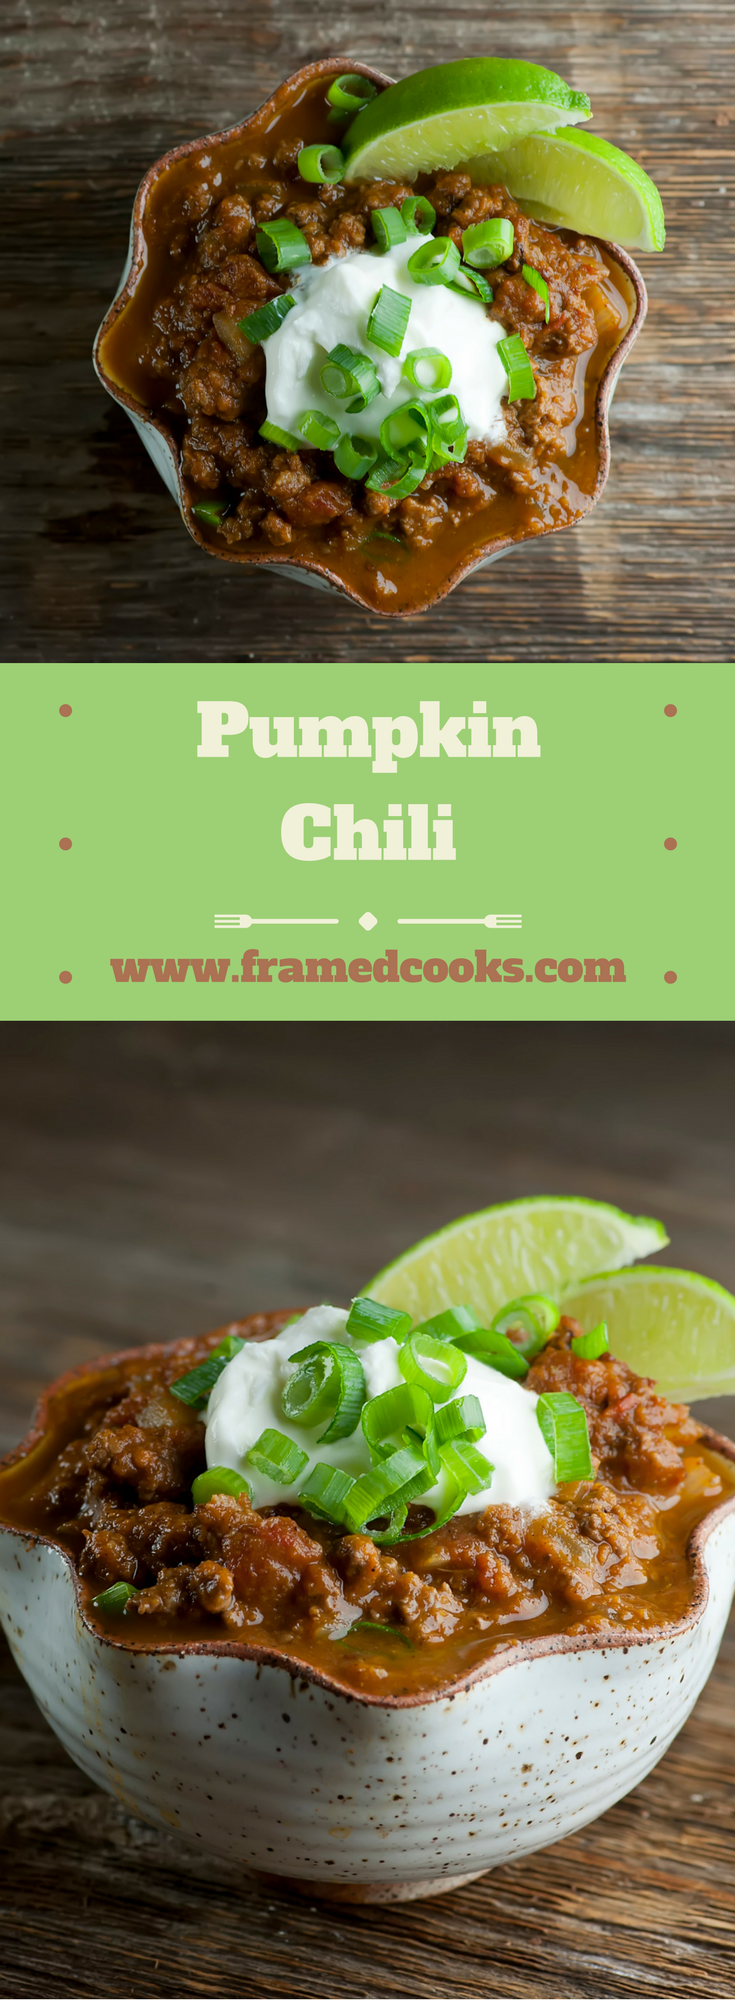 This easy hearty pumpkin chili recipe has all your favorite fall flavors!  So the next time you get that pumpkin spice craving, think chili!